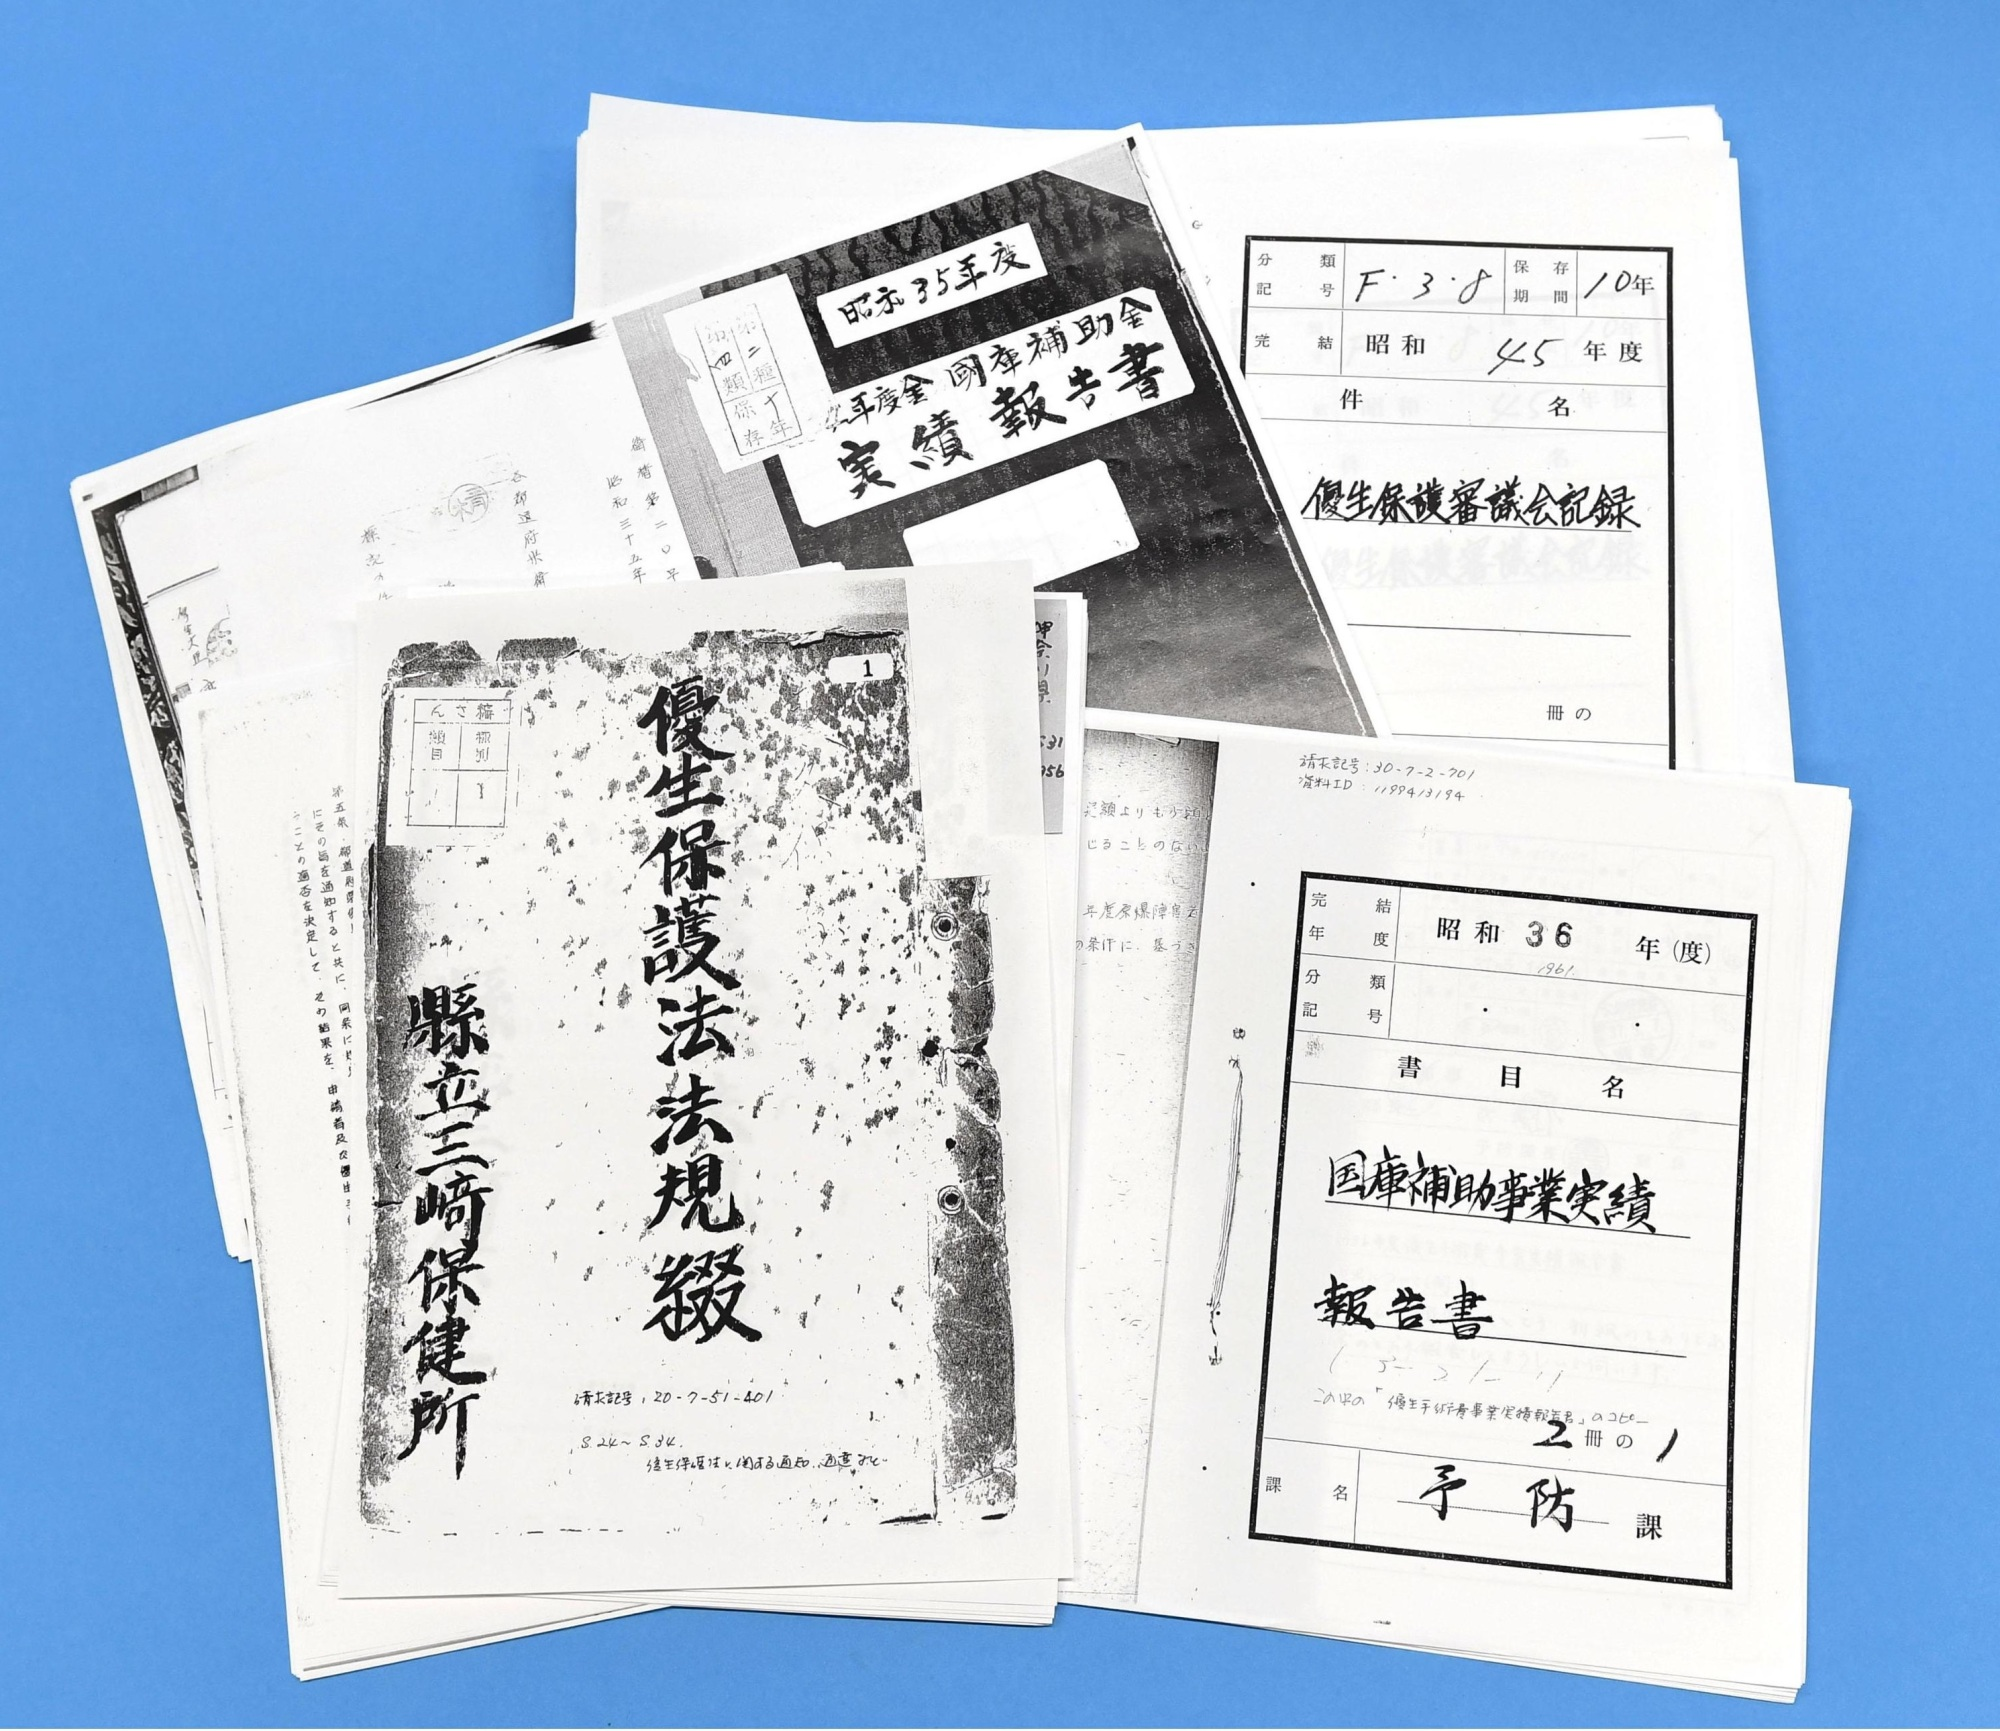 These documents related to the Eugenic Protection Law, which existed until 1996, were found in the Kanagawa Prefectural Government's archives. | KYODO